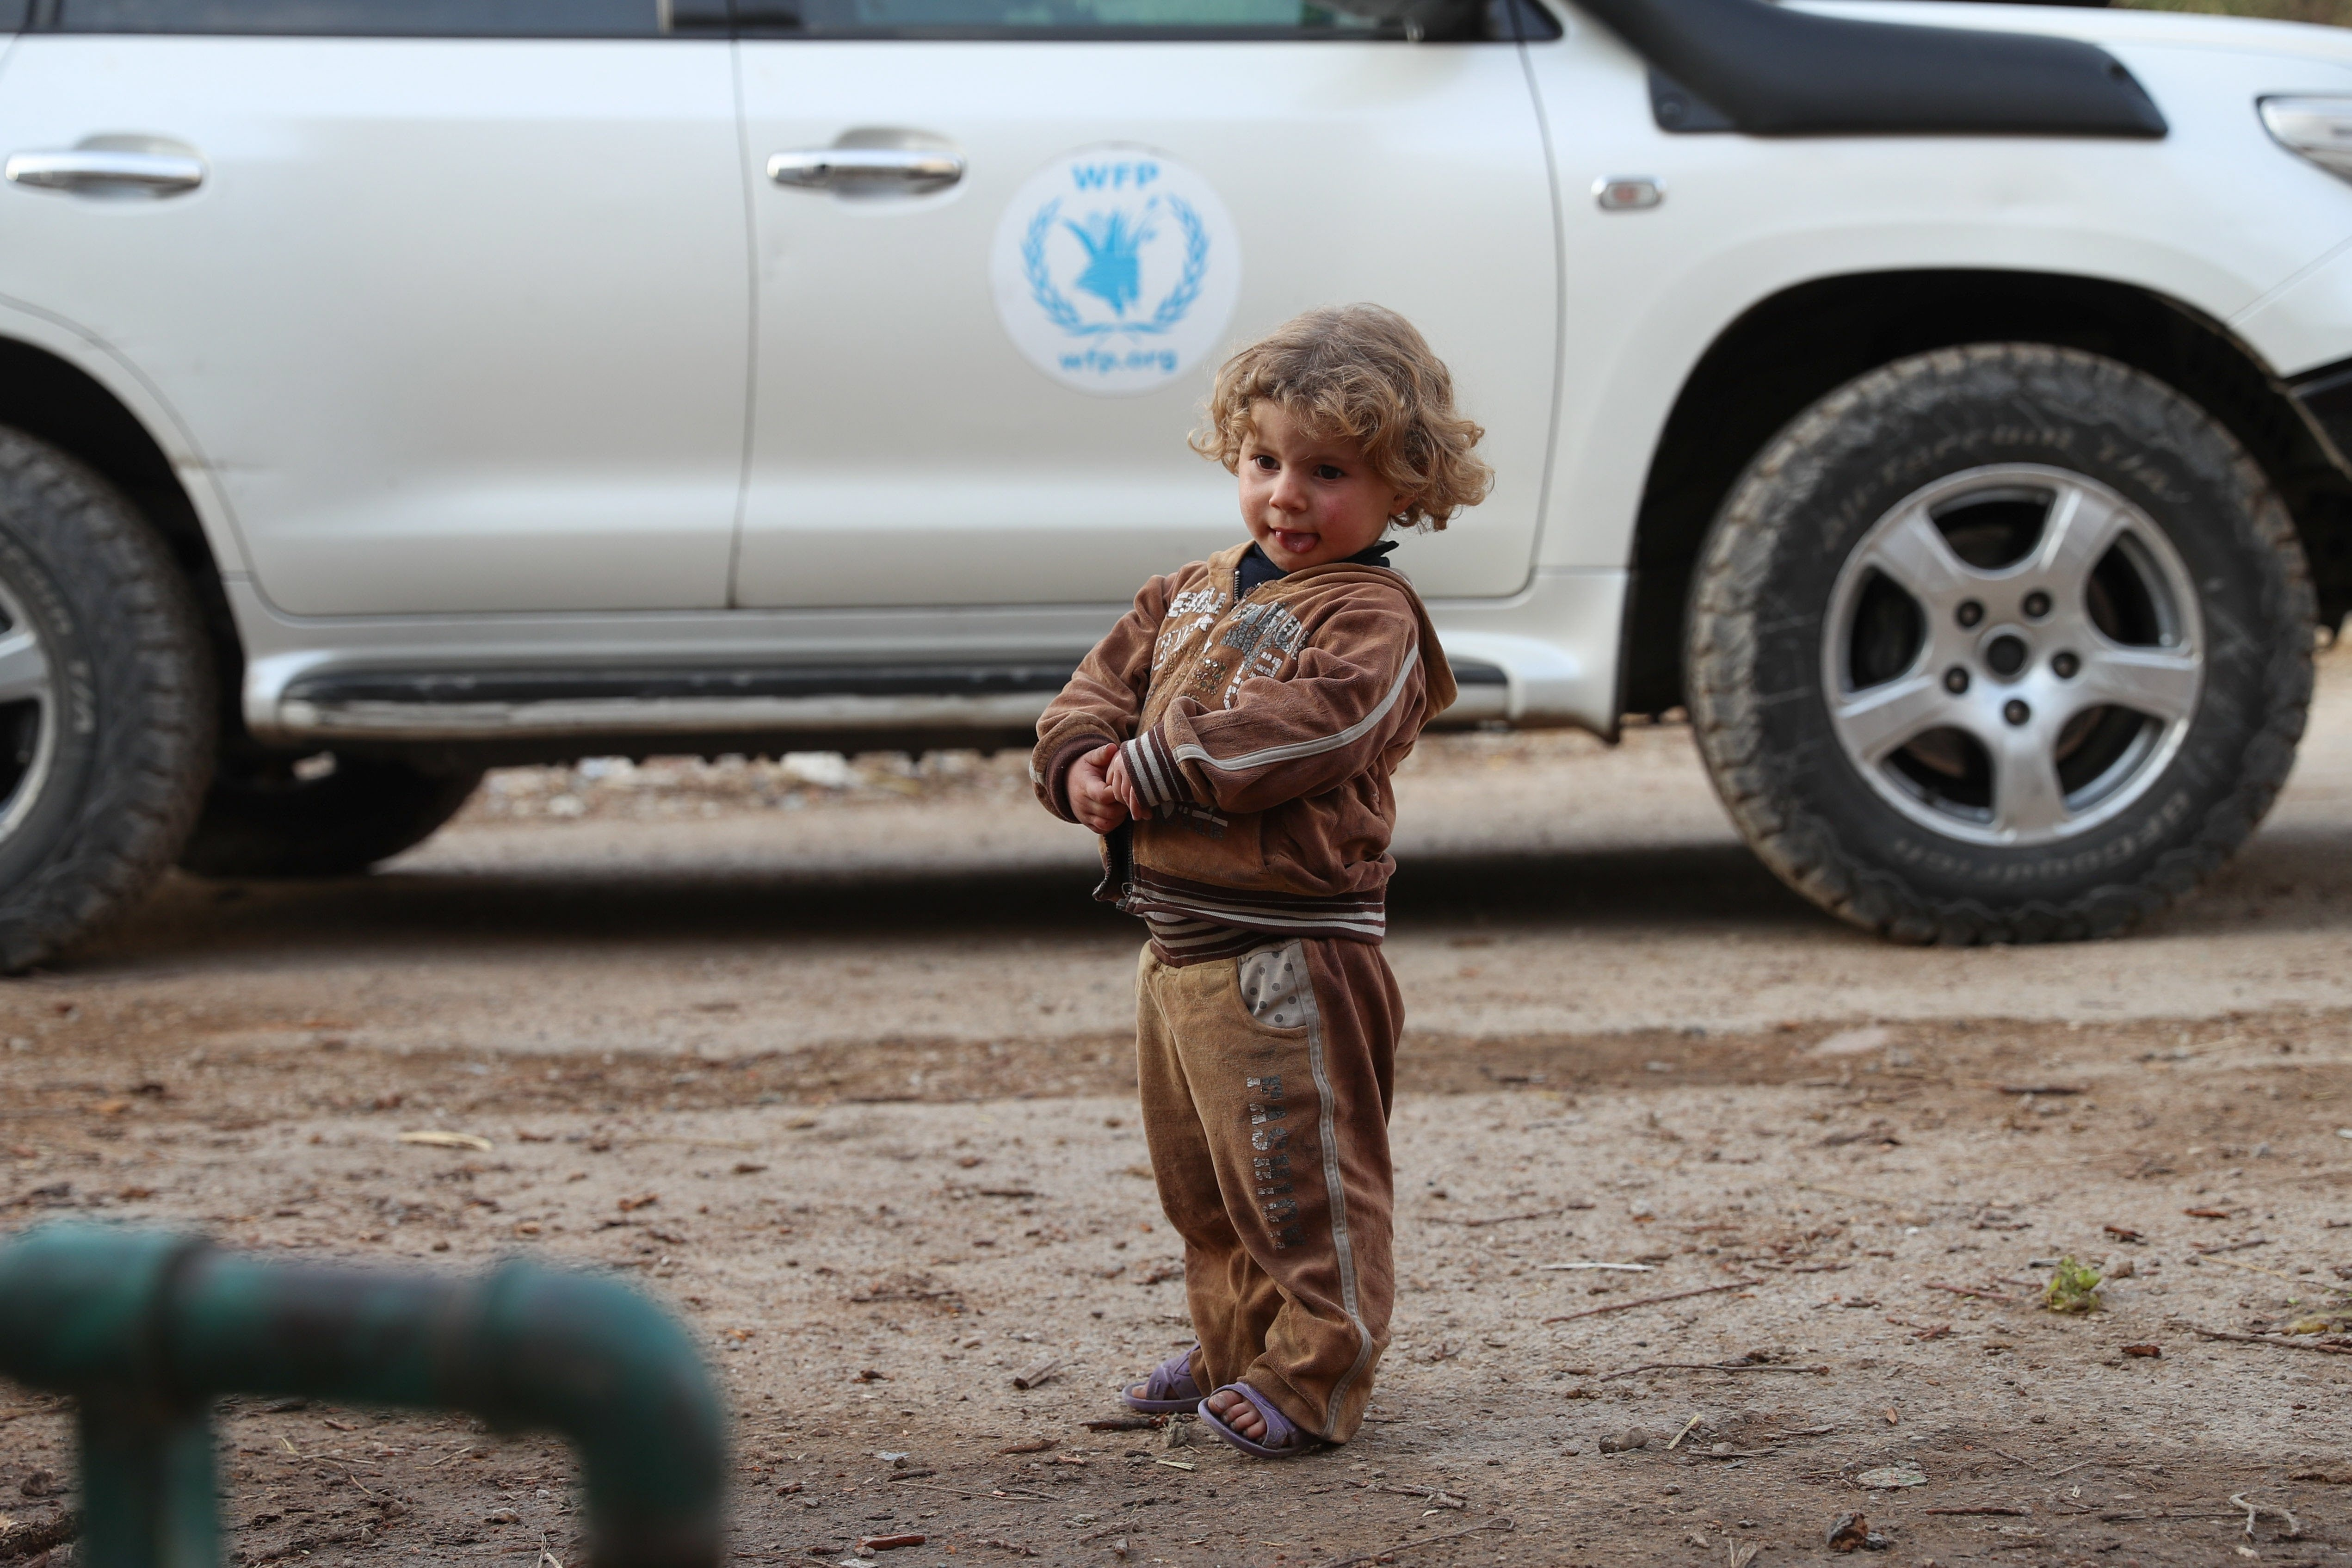 How the aid community responds in Syria will dictate its role in future crises